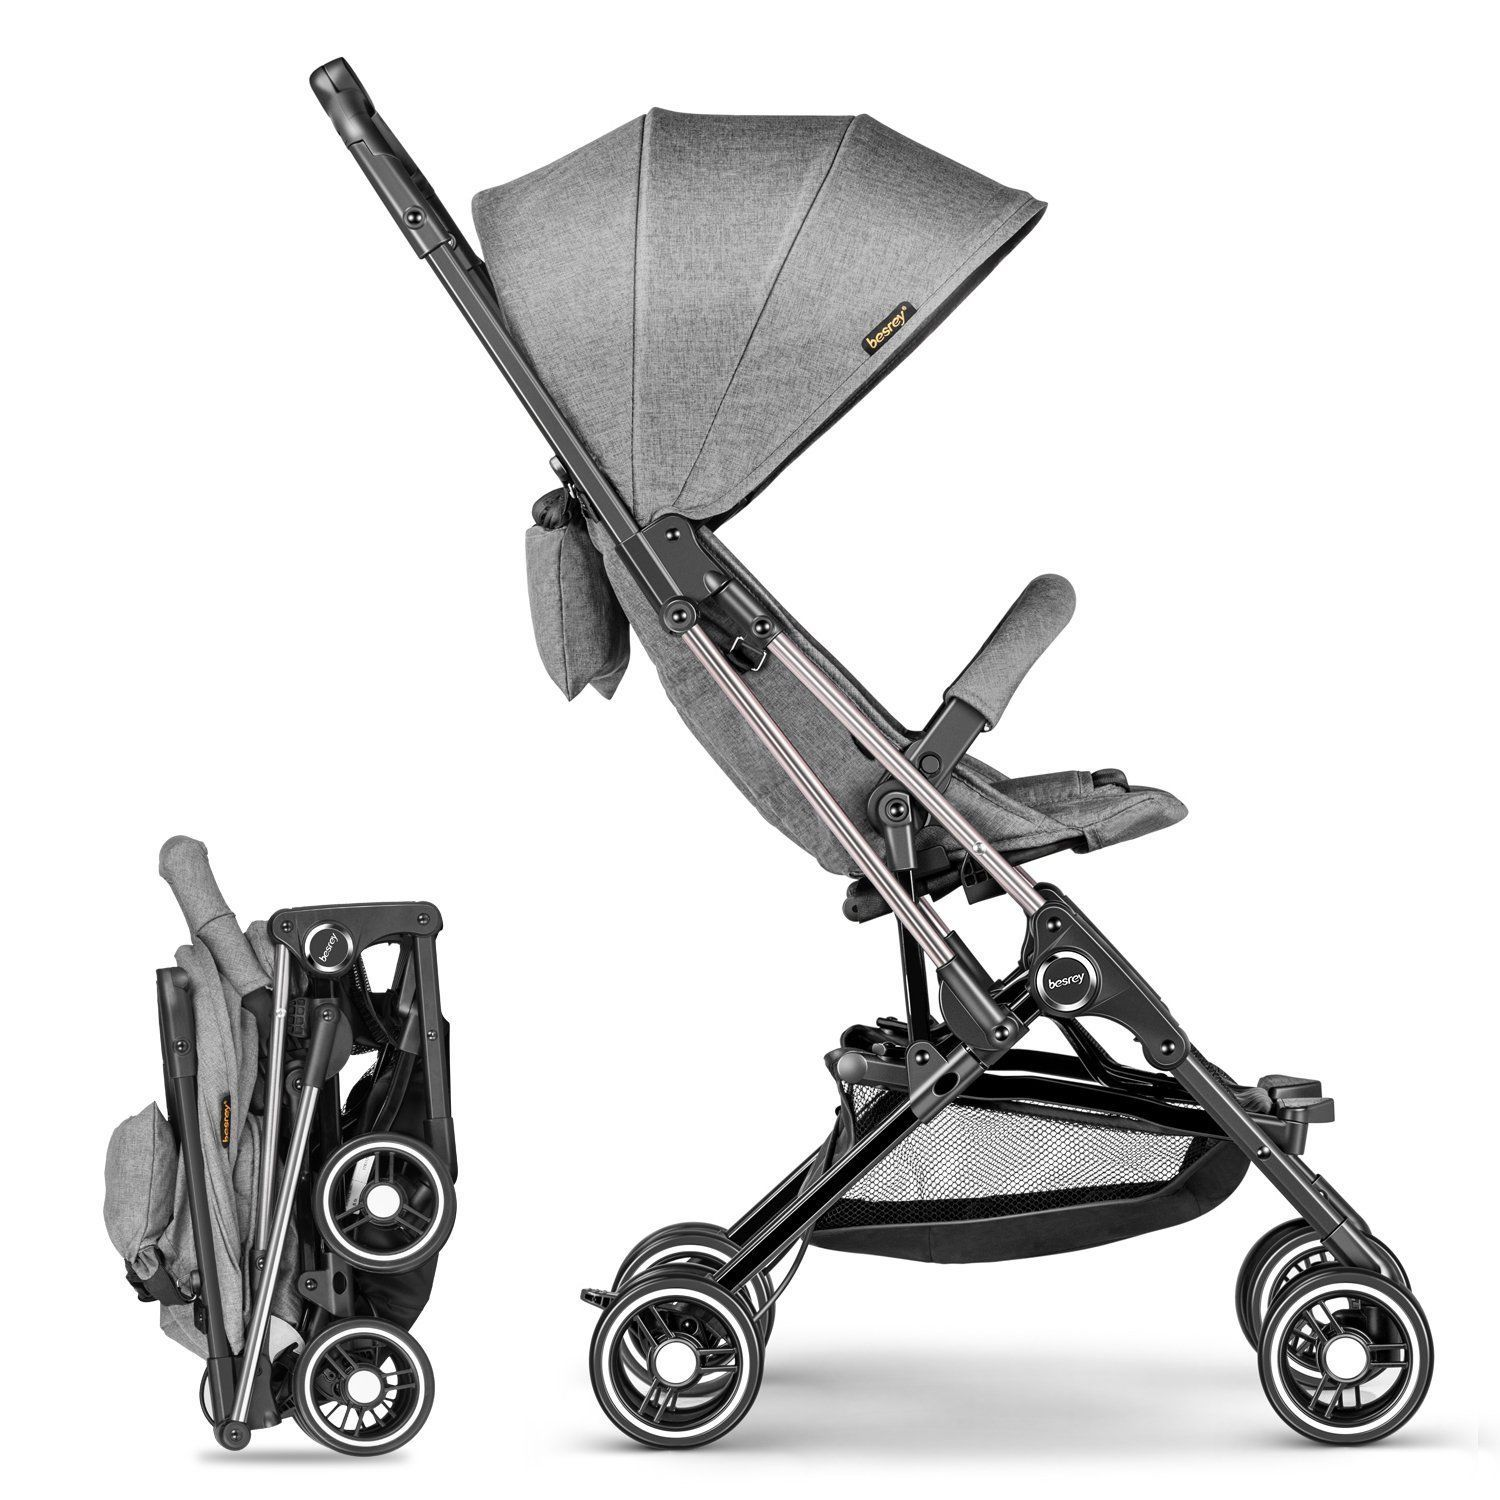 pressed Stroller Mini pushchair Capsule Pram Portable Travel Boarding